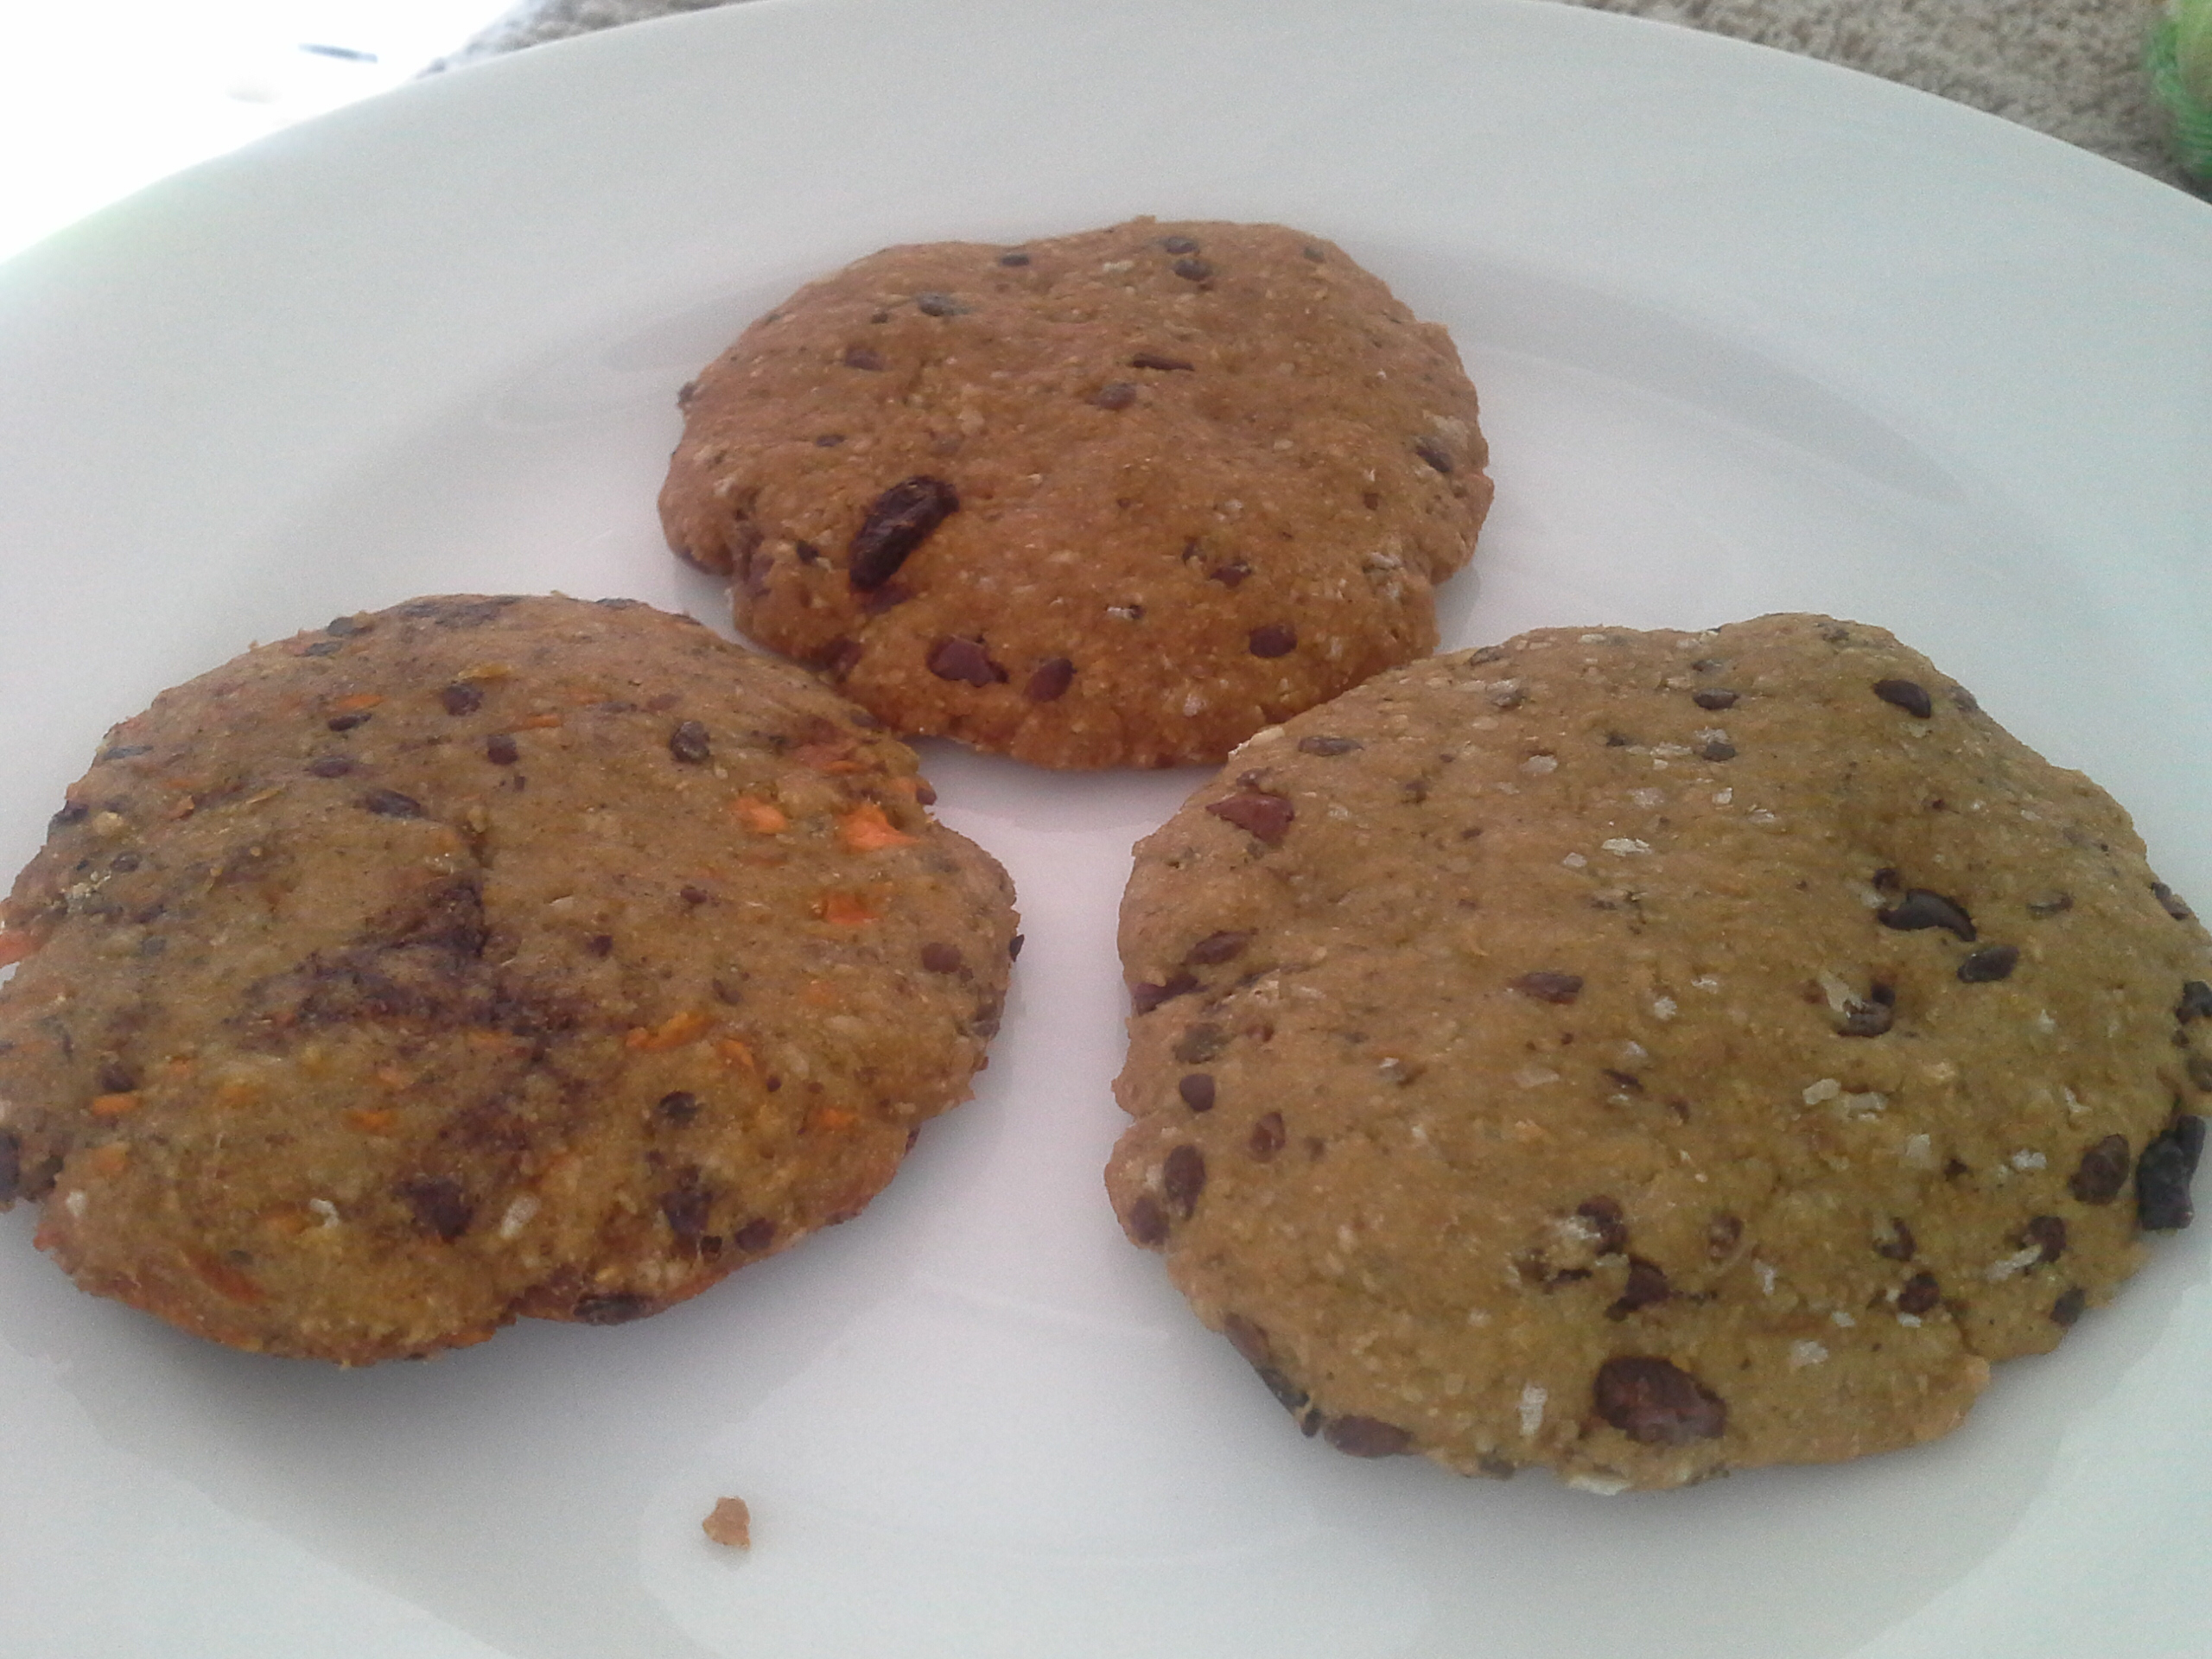 Healthy Avocado Chocolate Chip cookies recipe - successful revisit!